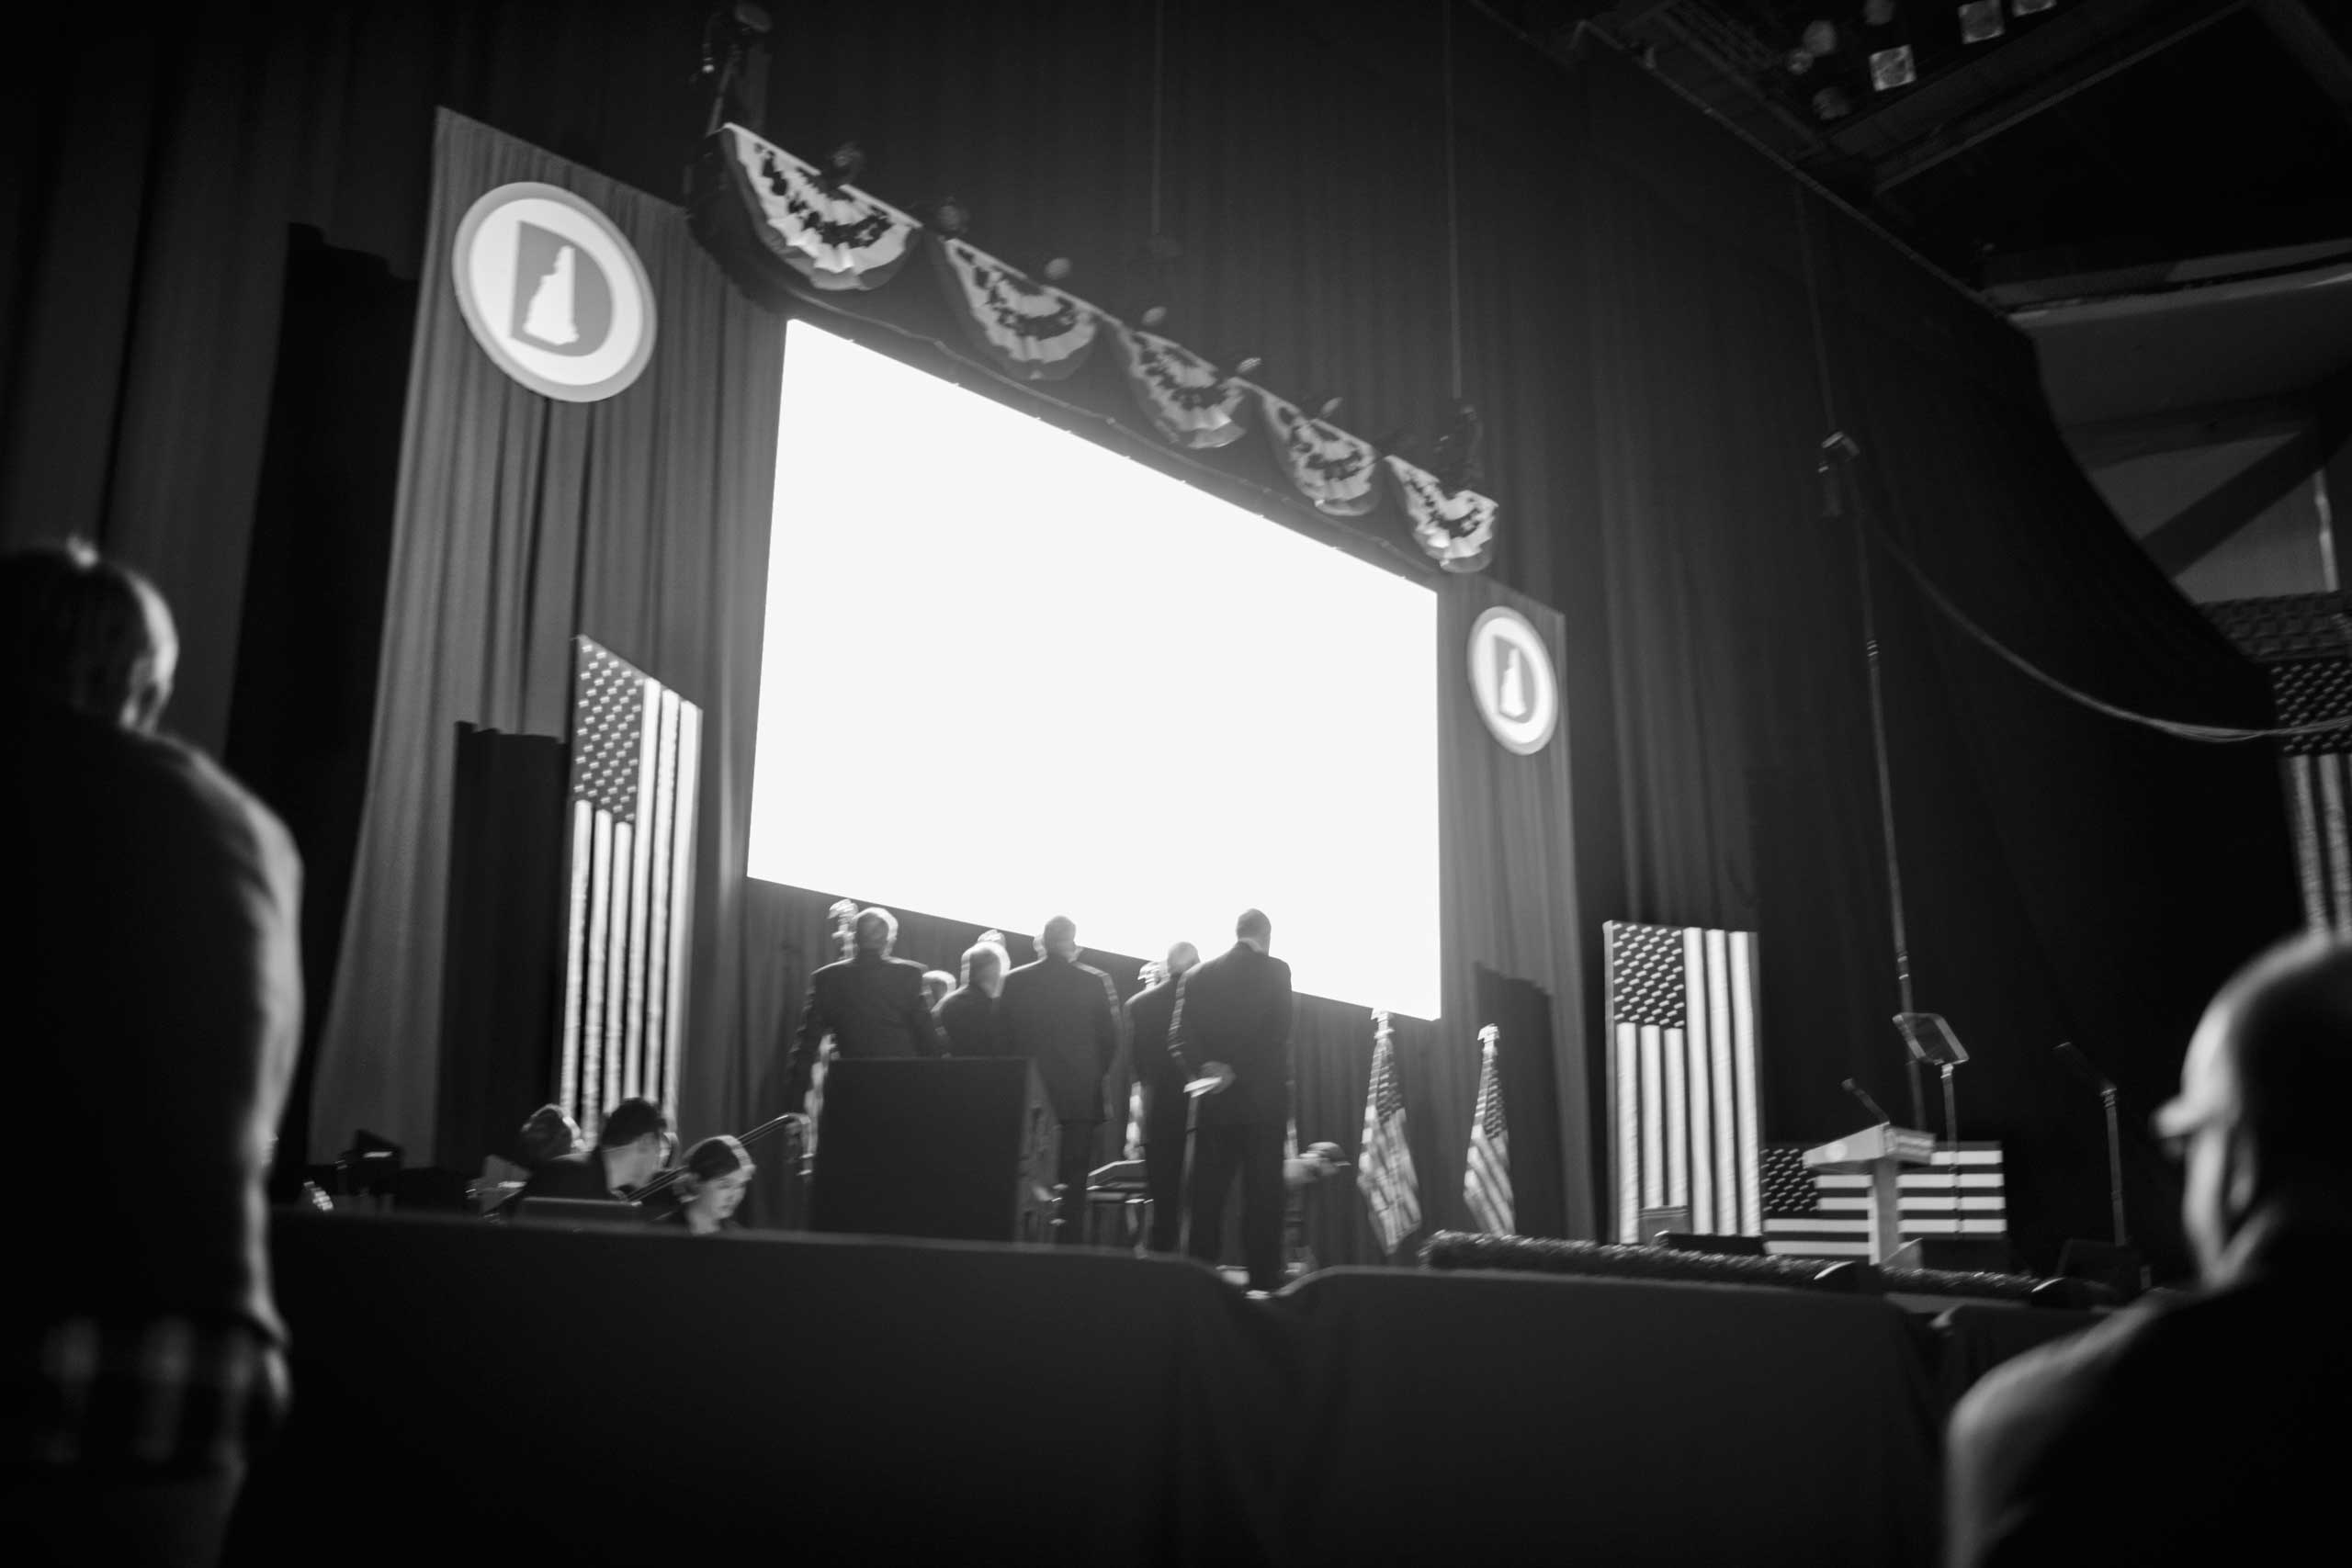 February 5, 2016 - Manchester, New Hampshire: Democratic Party officials are running a slideshow at the 2016 McIntyre-Shaheen 100 Club Celebration.